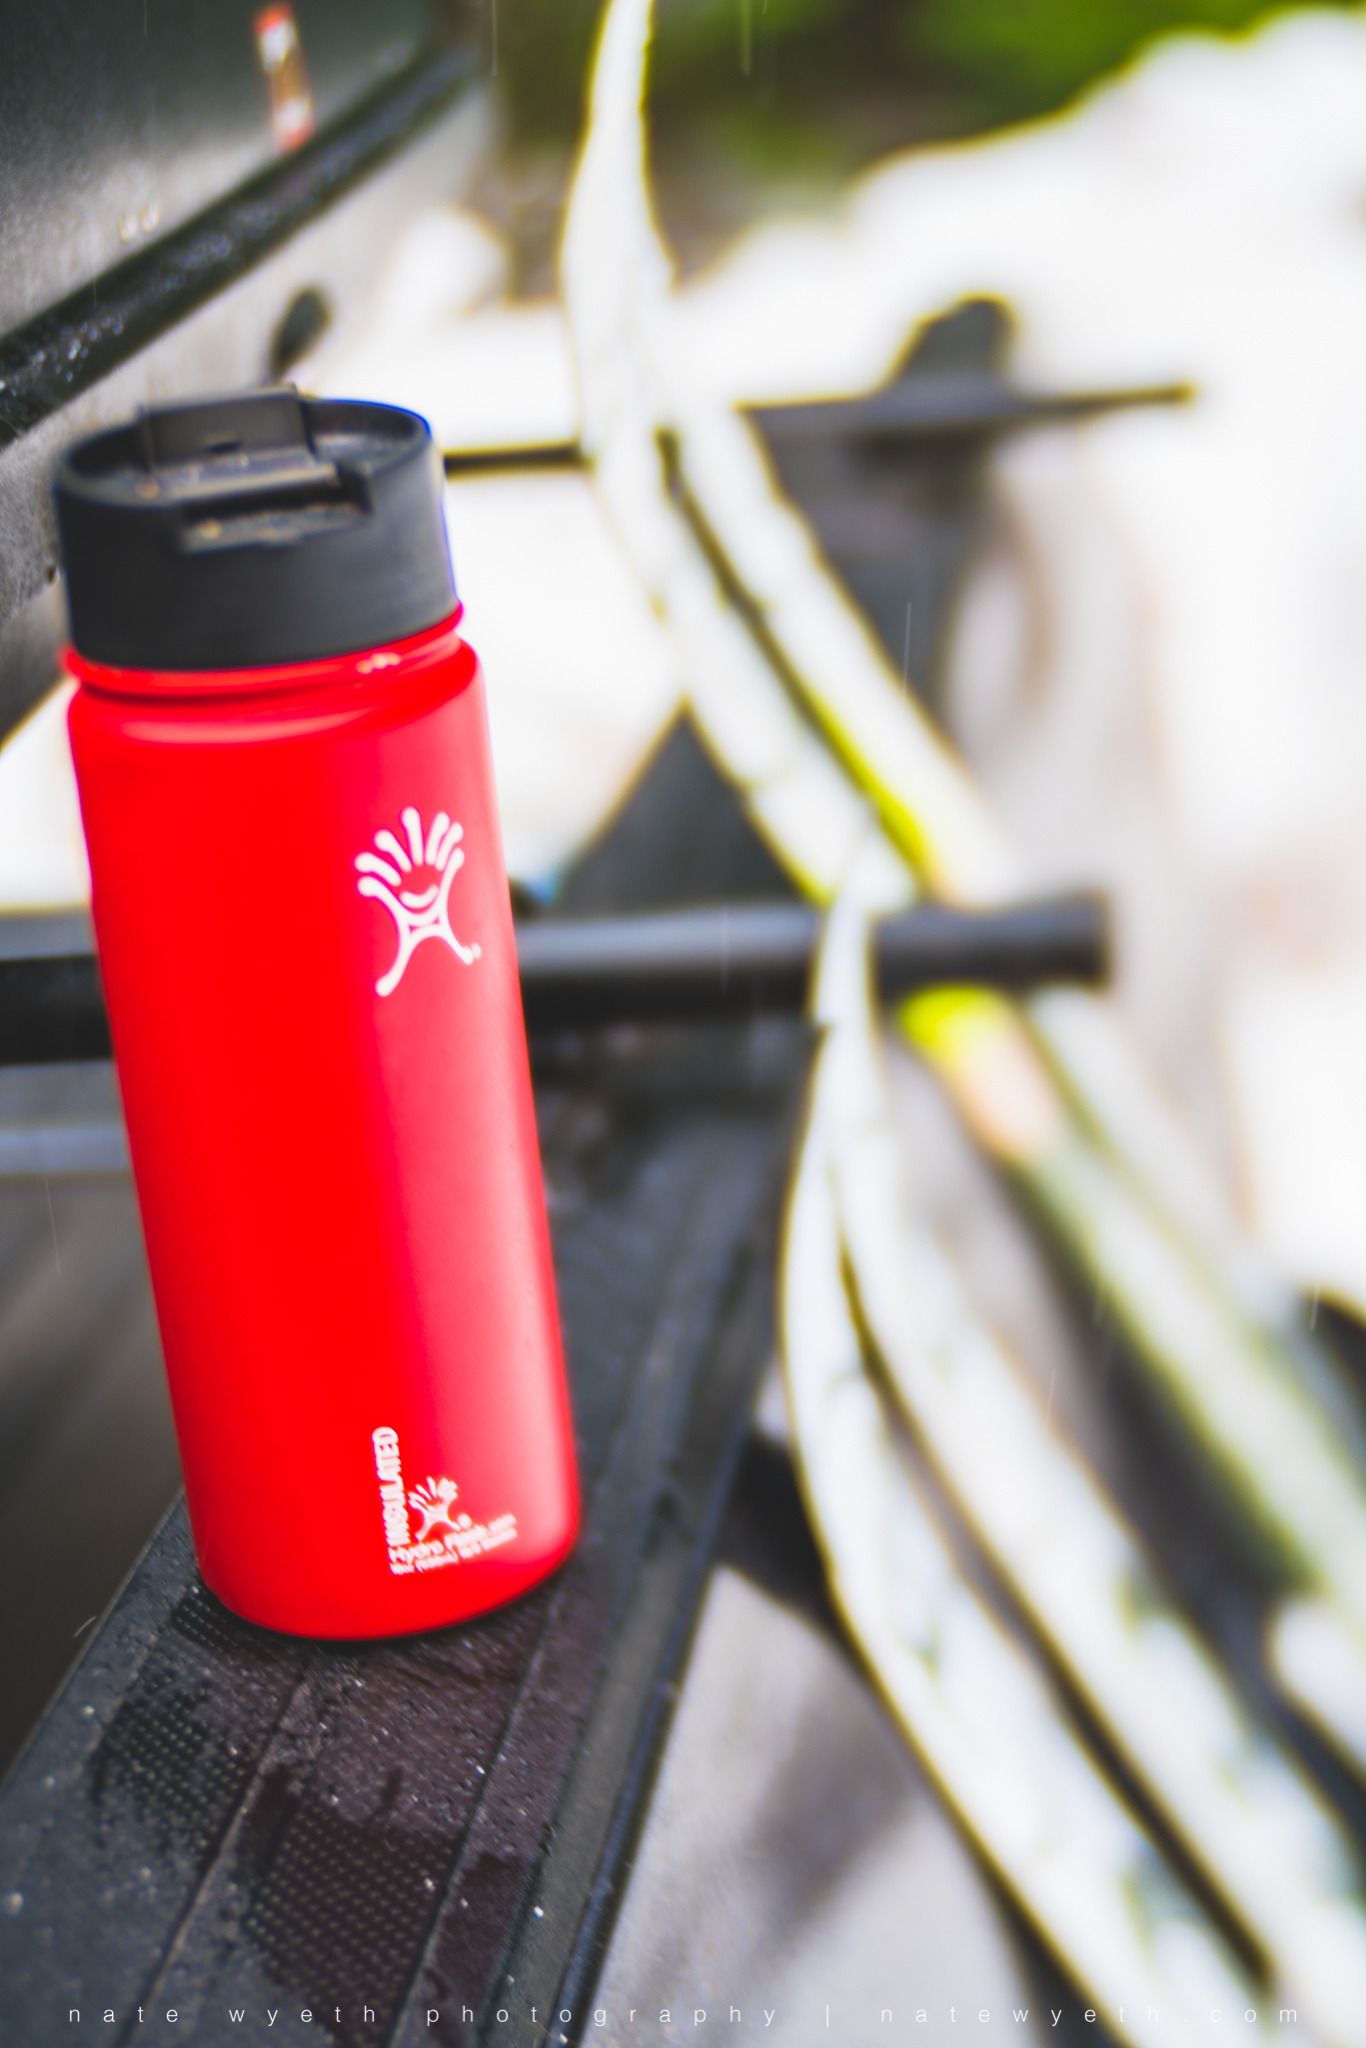 HydroFlask reusable and insulated tea vessel.